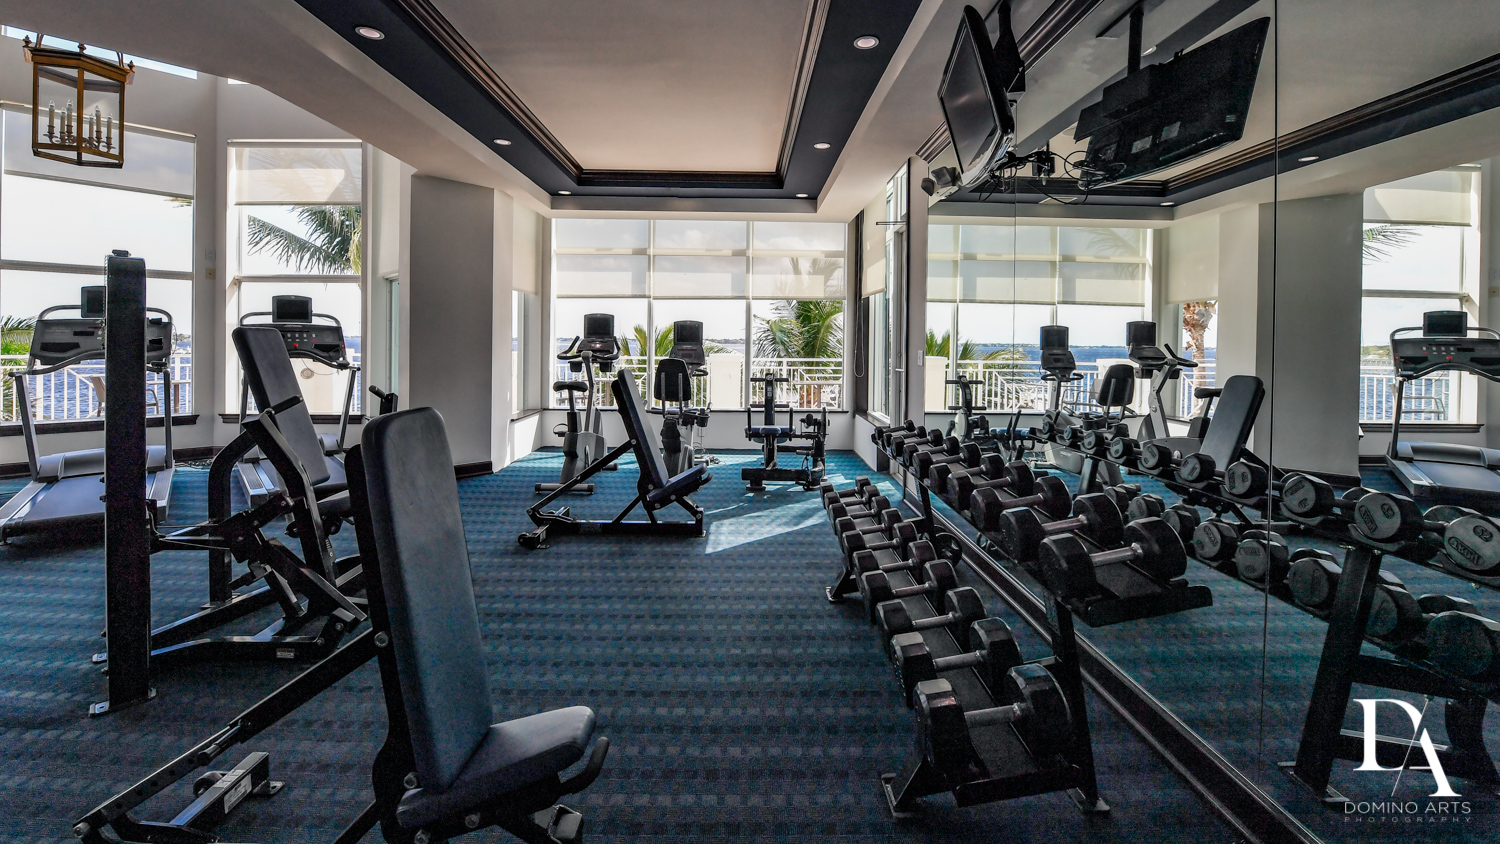 luxury gym at Harborage Yacht Club & Marina by Domino Arts Photography